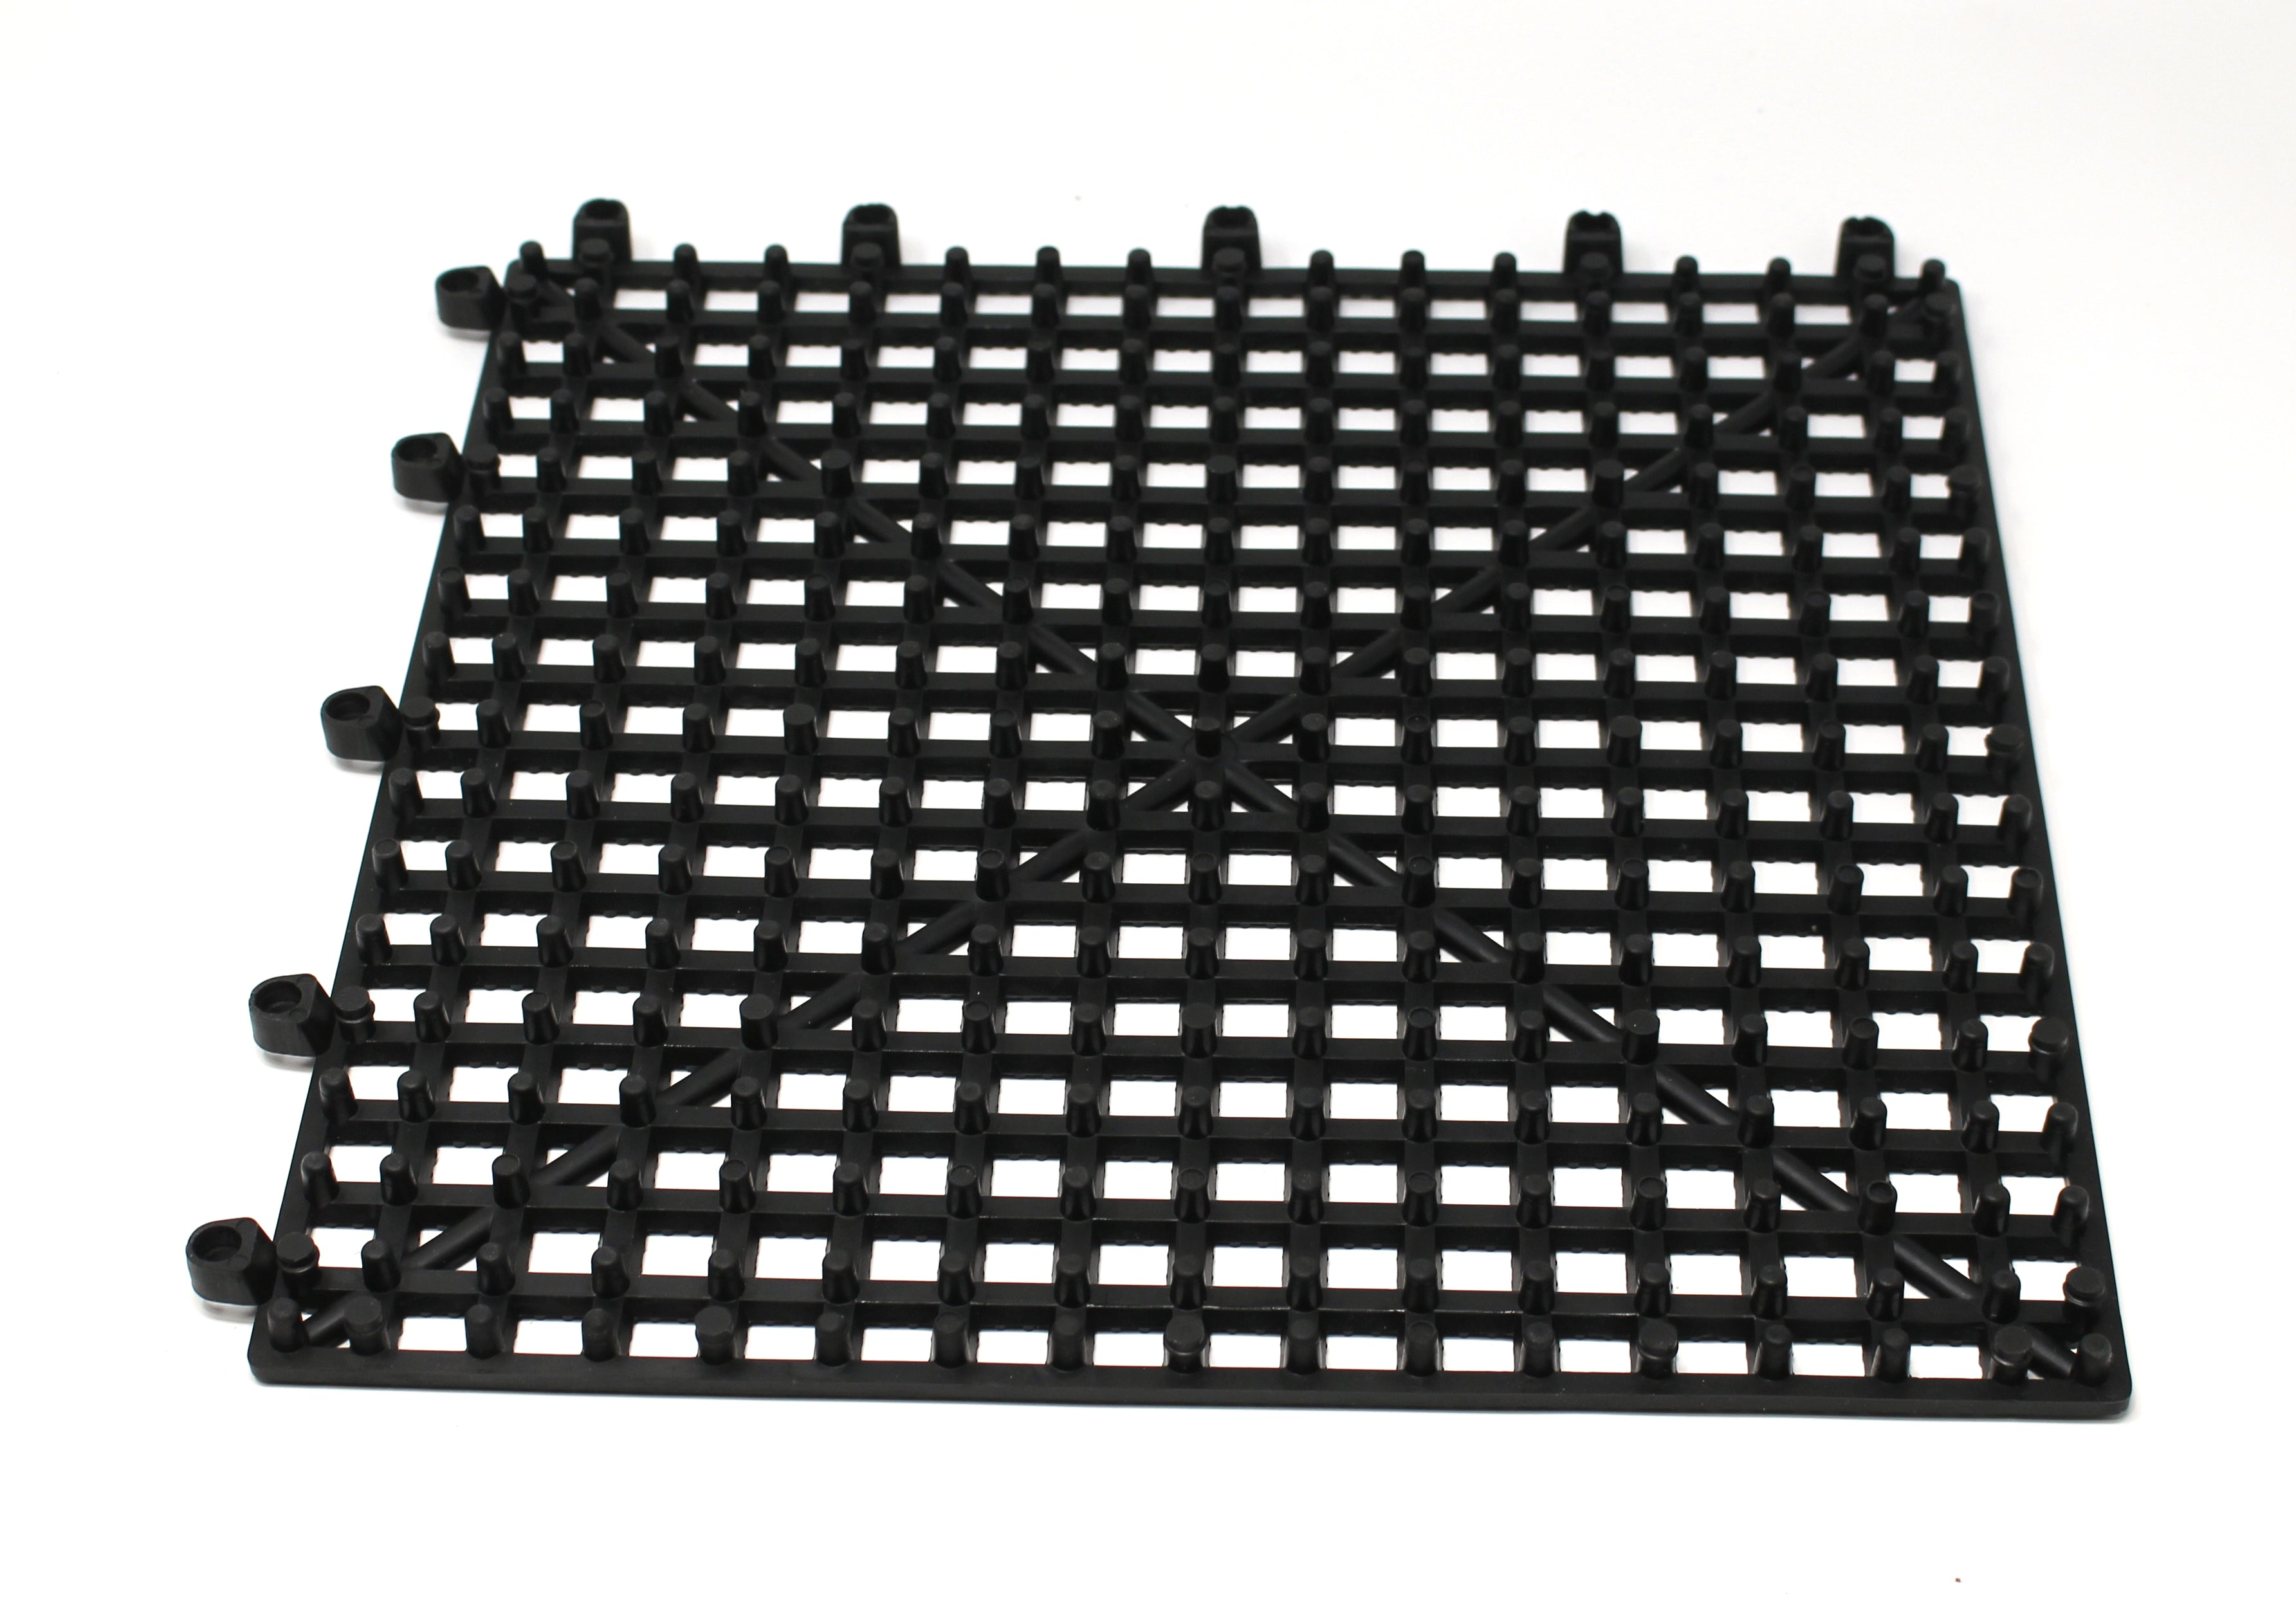 black mats flexible pool floor patio boat products tile plastic interlocking rubber restaurant pack